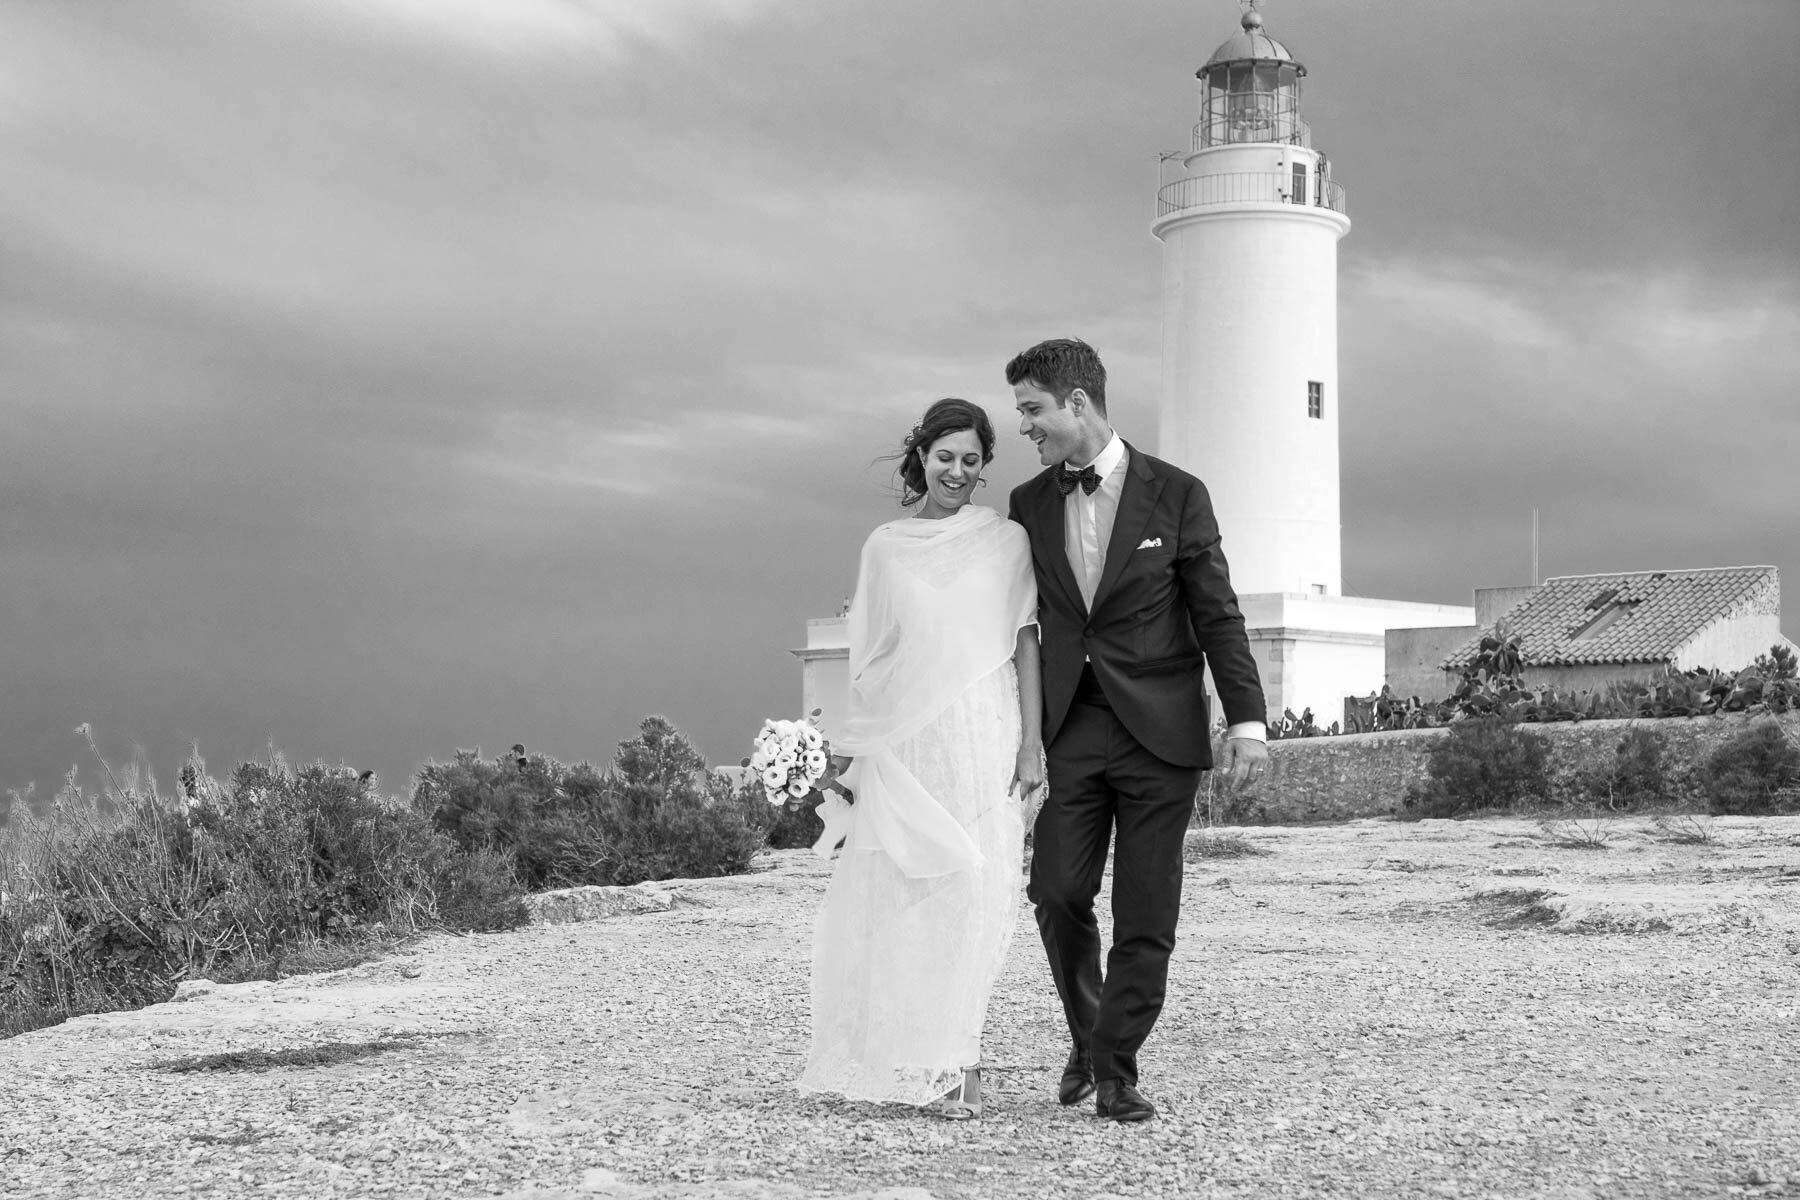 wedding formentera chezz gerdi 17.jpg